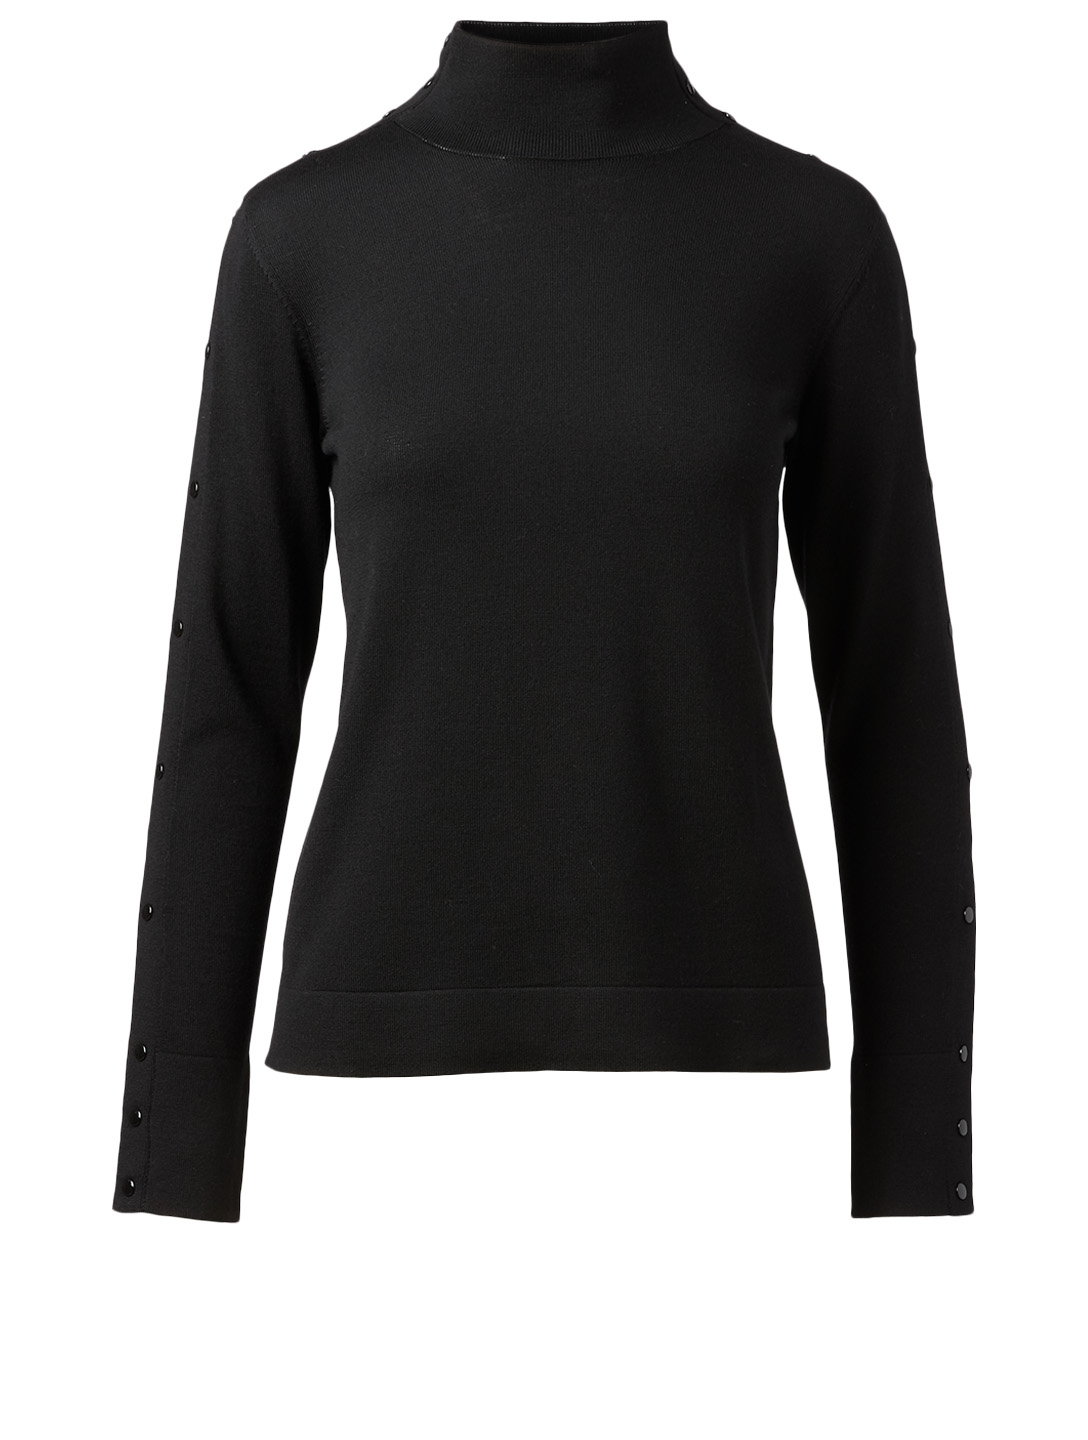 AKRIS PUNTO Wool Snap Button Sweater Women's Black